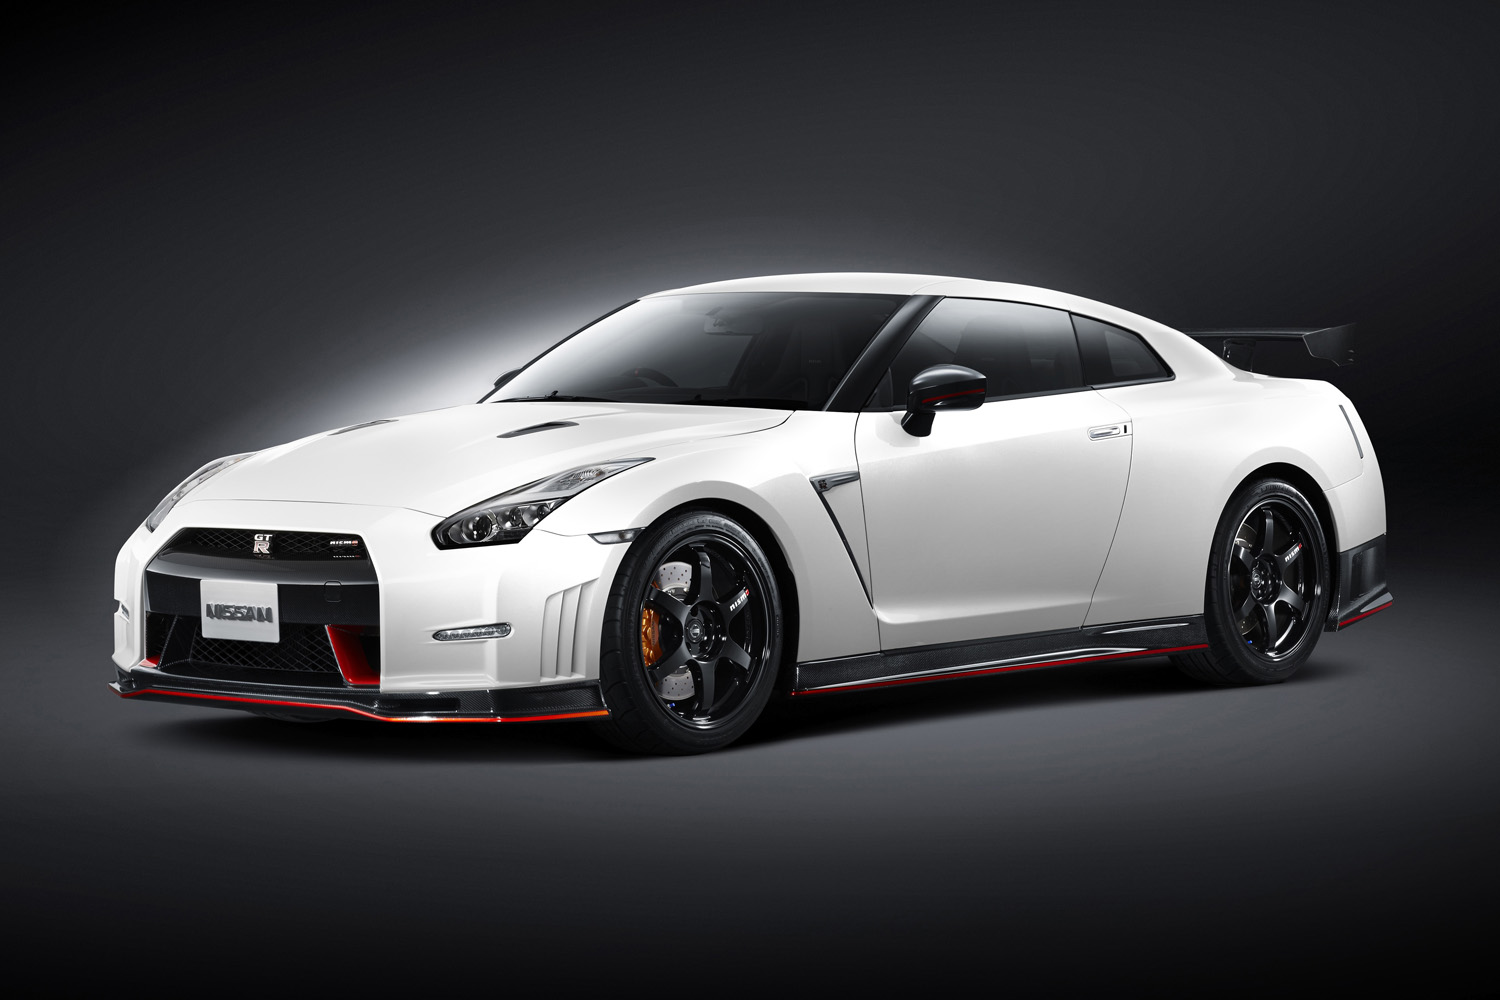 Nismo Protector, Body Side Sill LH Side Skirt Nissan GT-R 2008-16